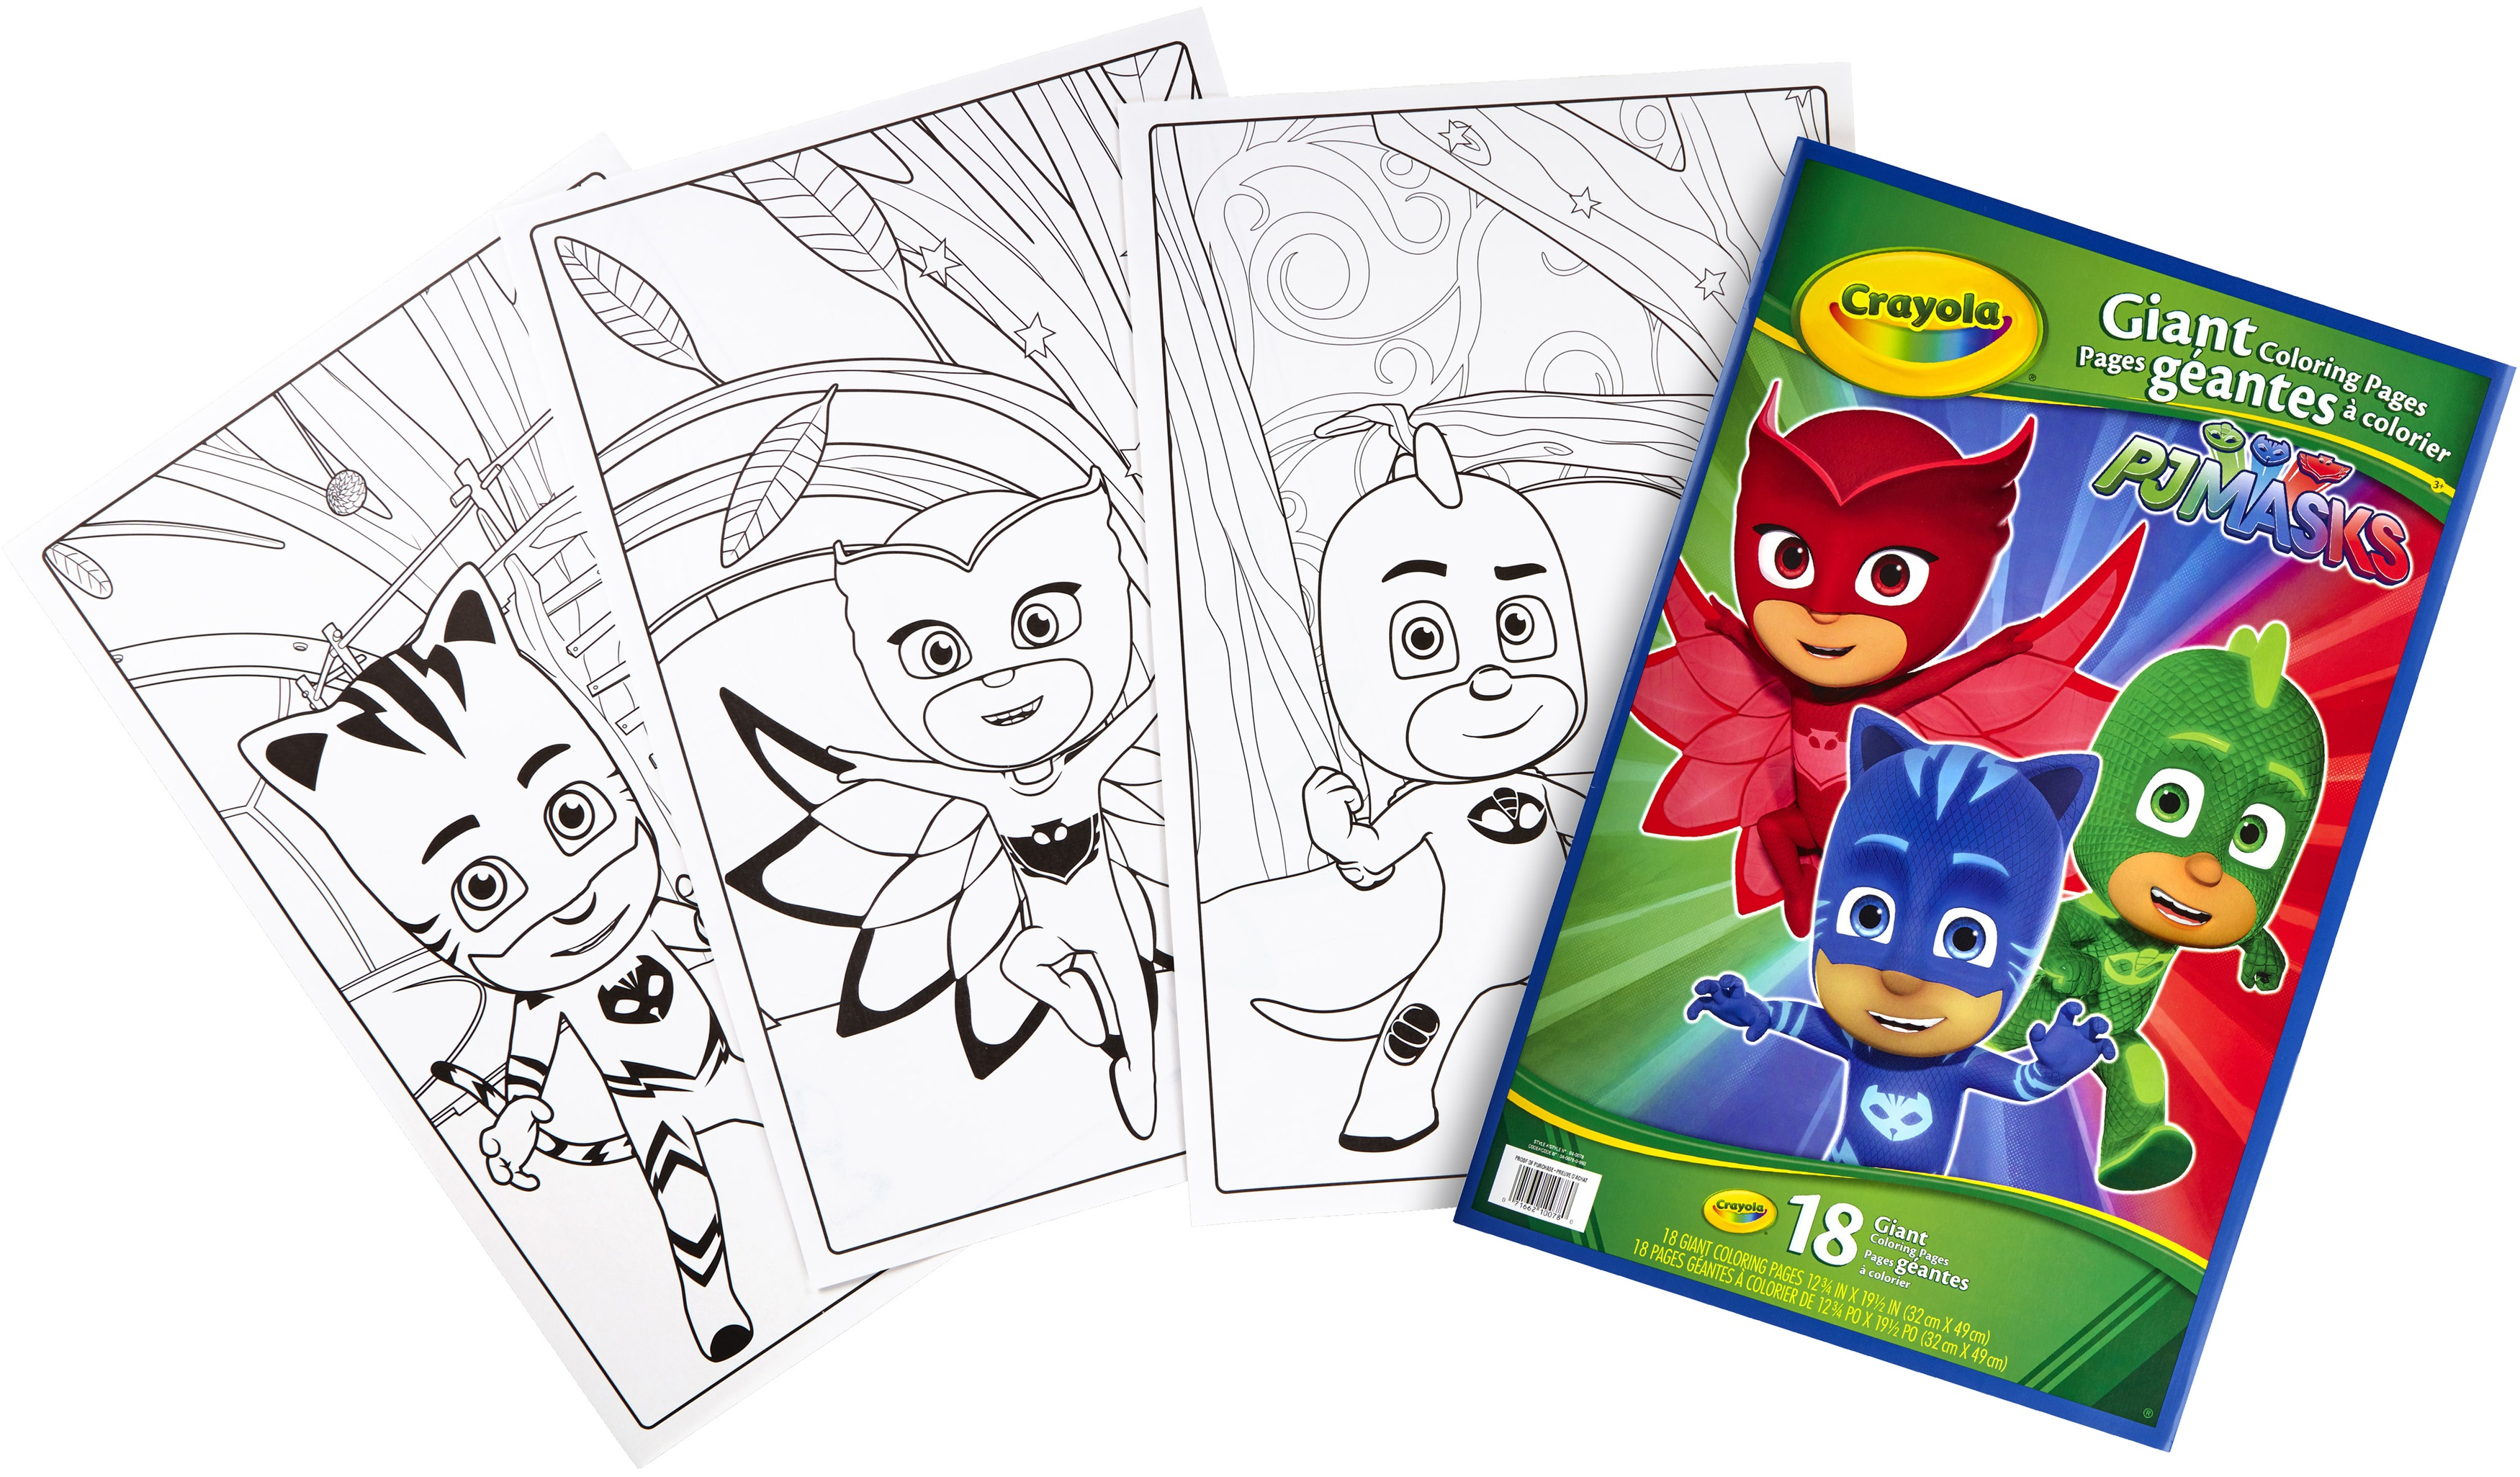 - Crayola Giant Coloring Pages Featuring Disney'S Pj Masks - Walmart